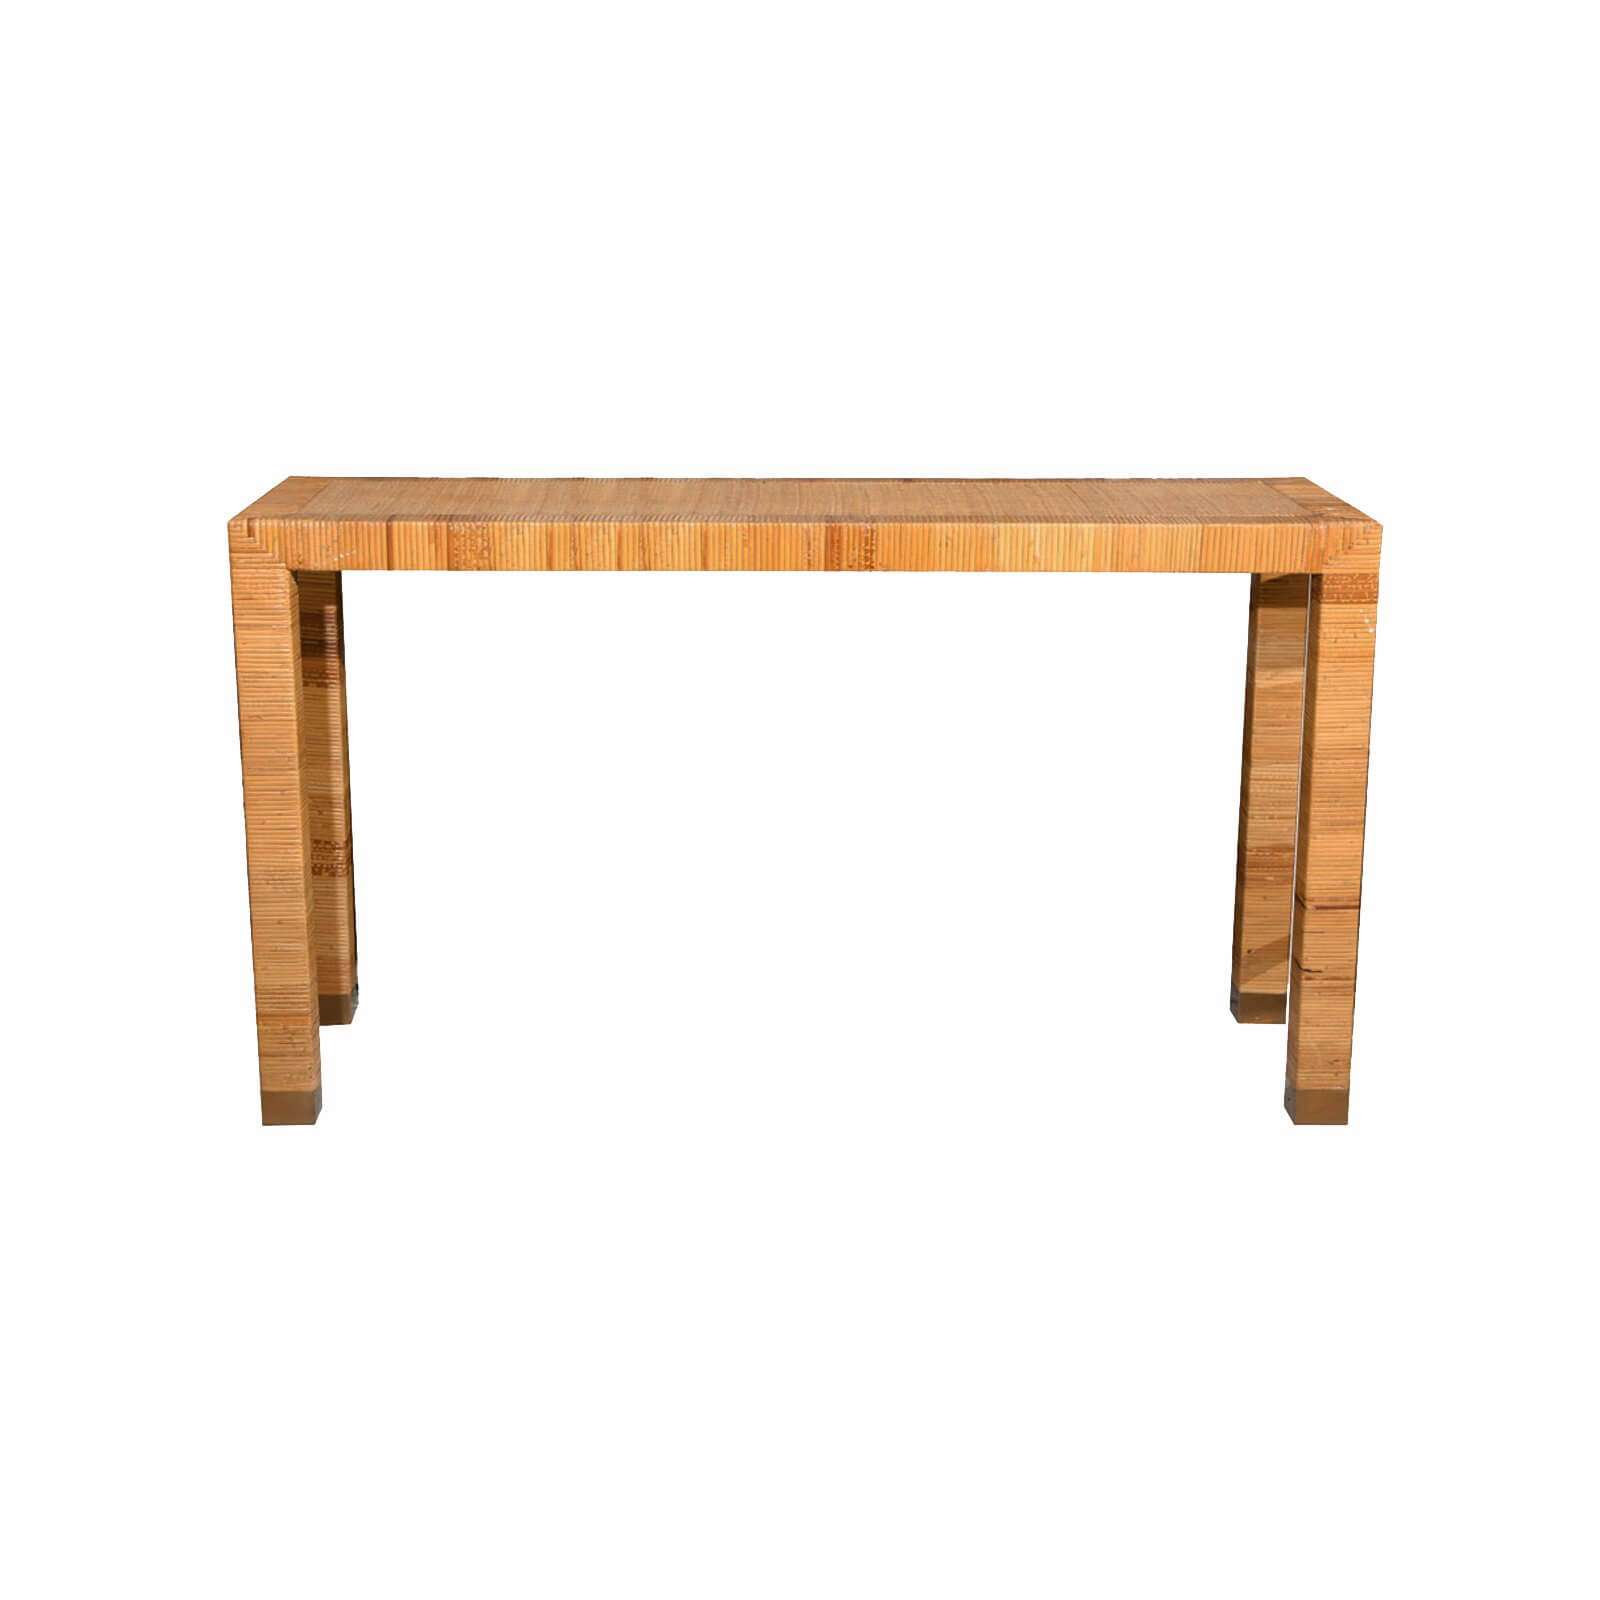 INDIGO COAST CONSOLE 1 - STUART MEMBERY HOME COLLECTION